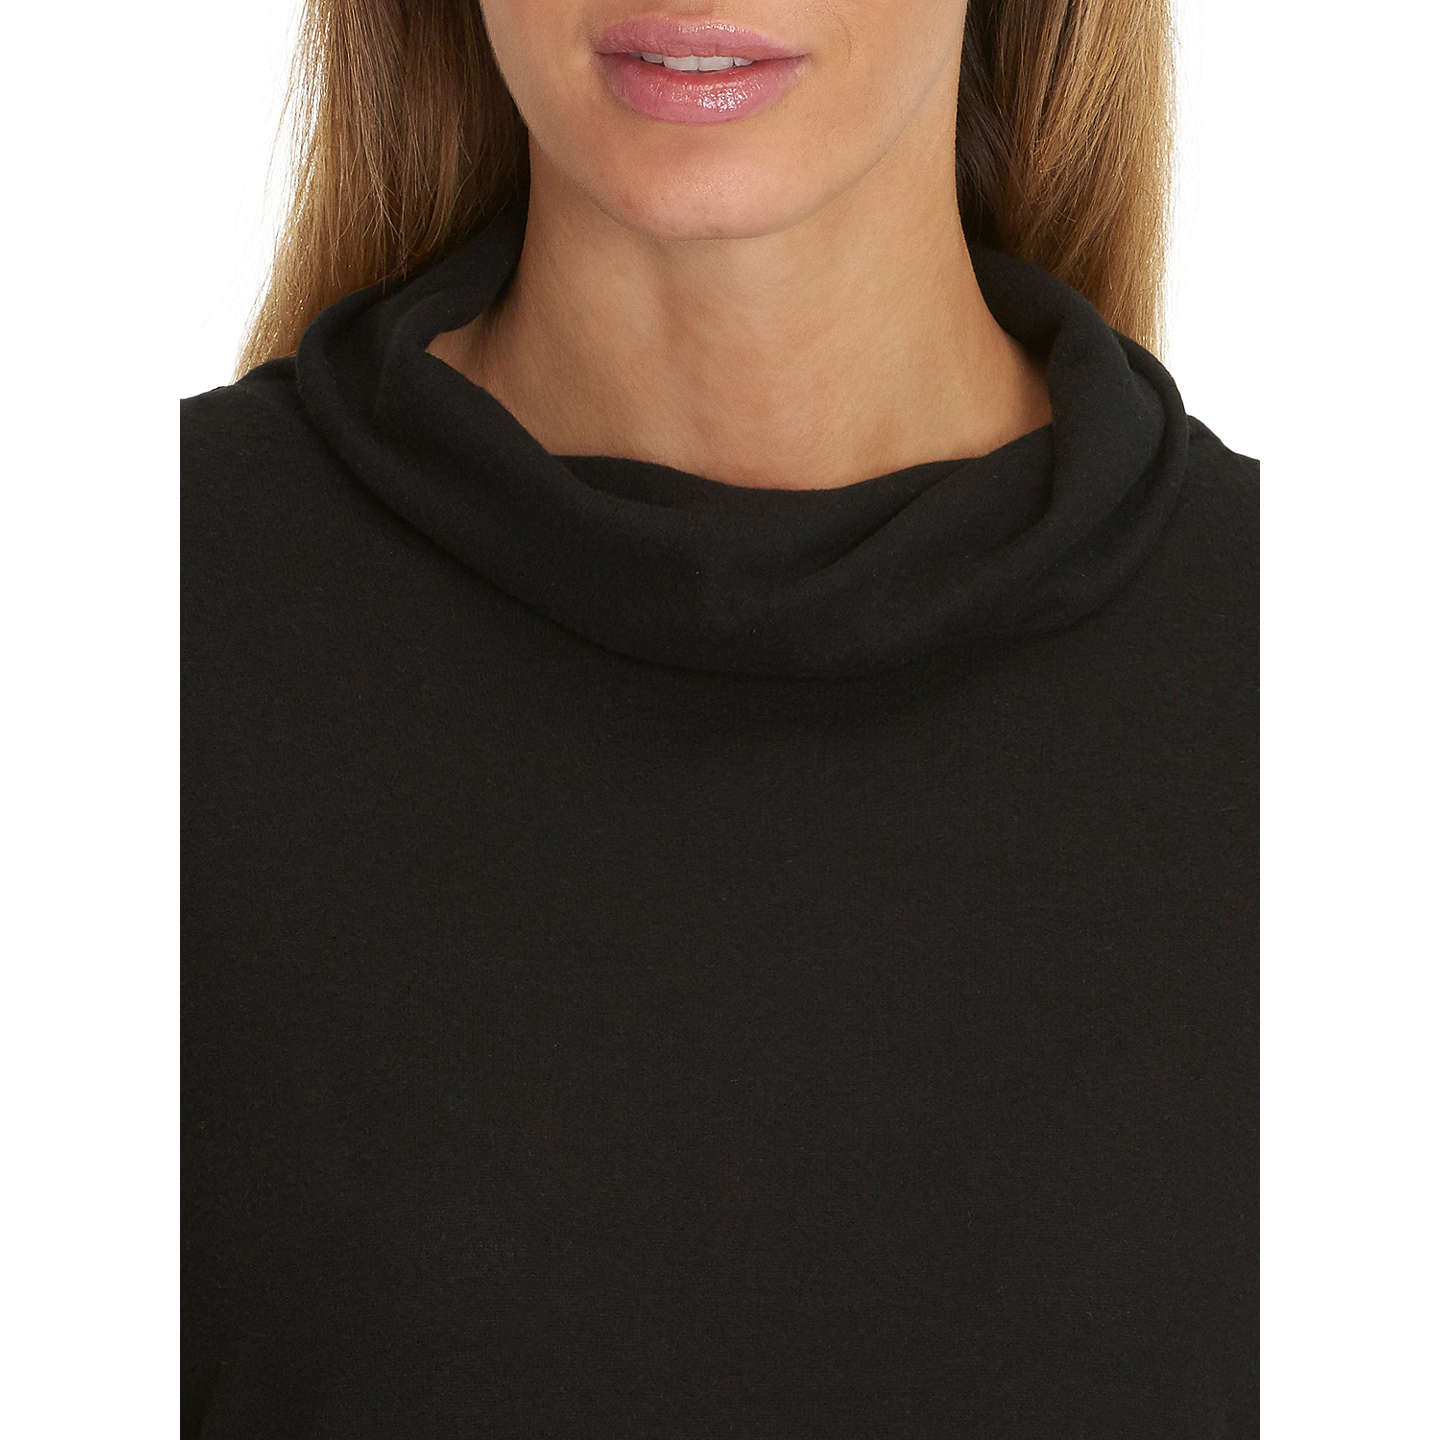 BuyBetty Barclay Jersey Jumper, Black, 18 Online at johnlewis.com